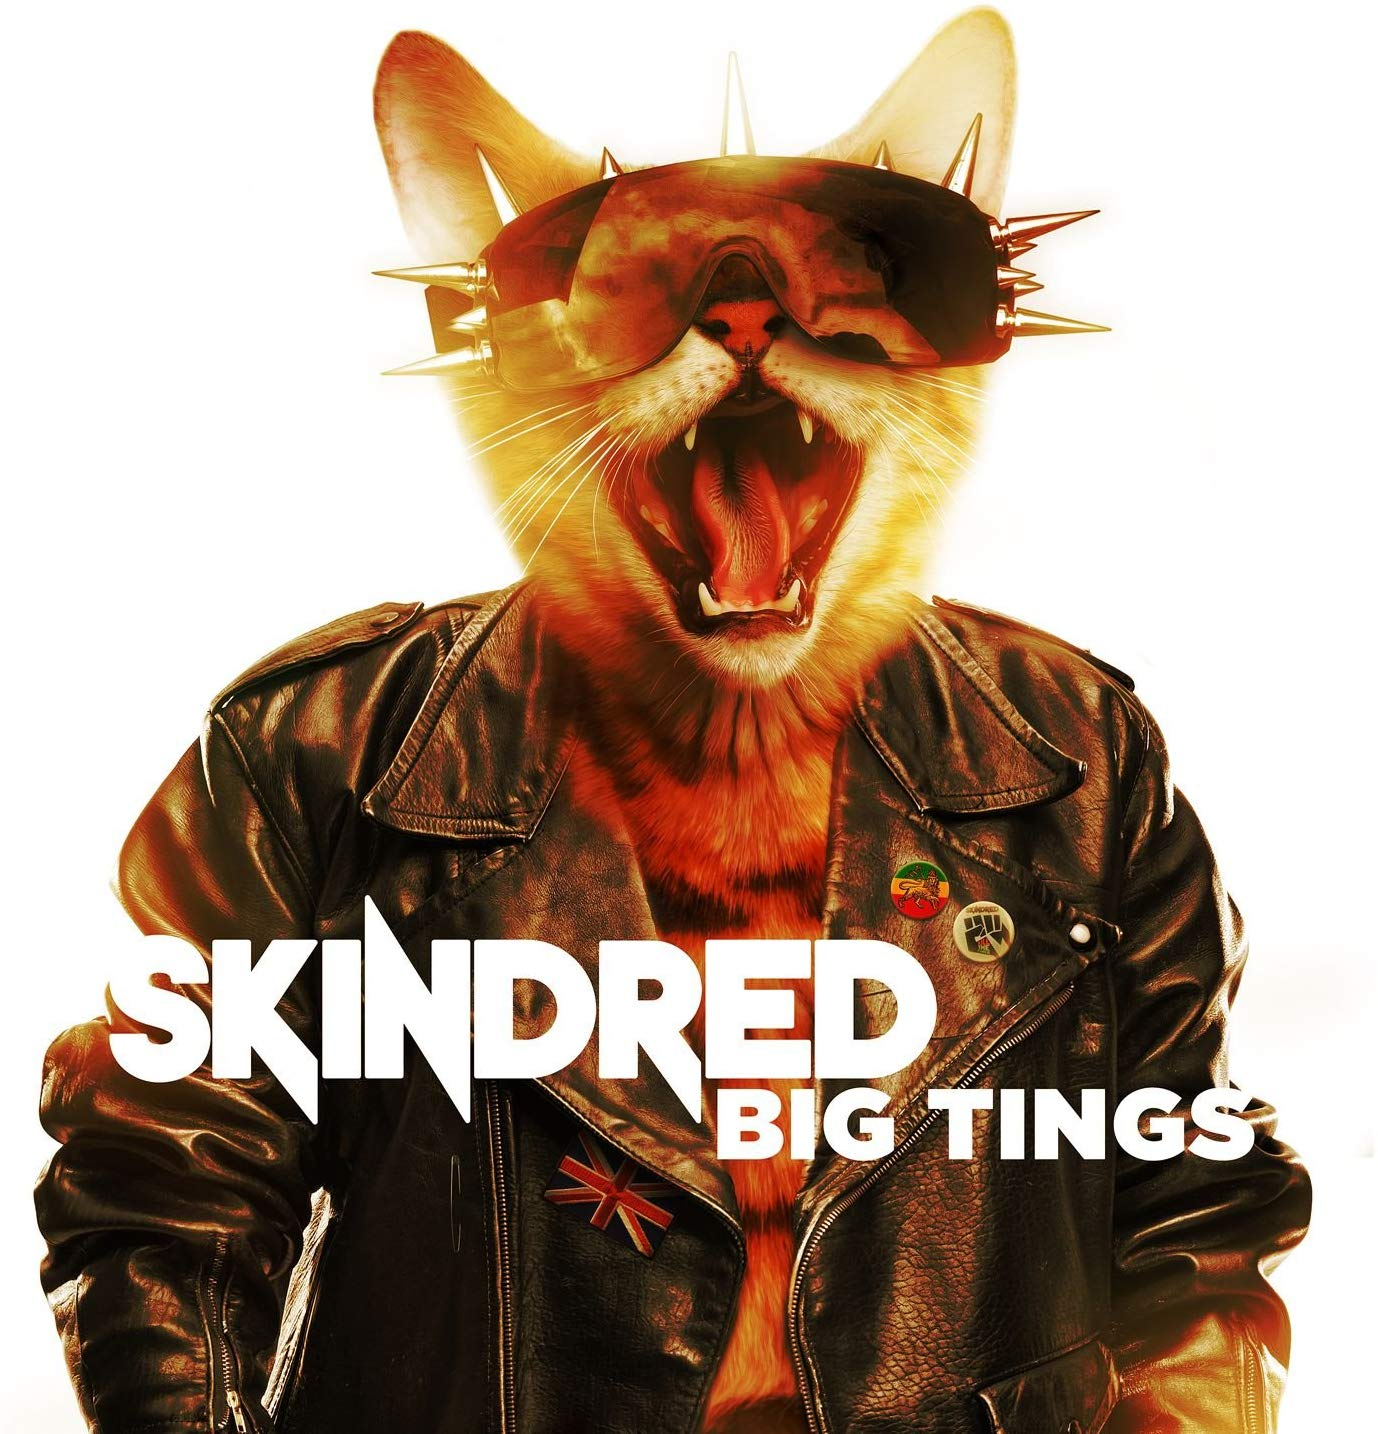 Image of Big Tings / Skindred